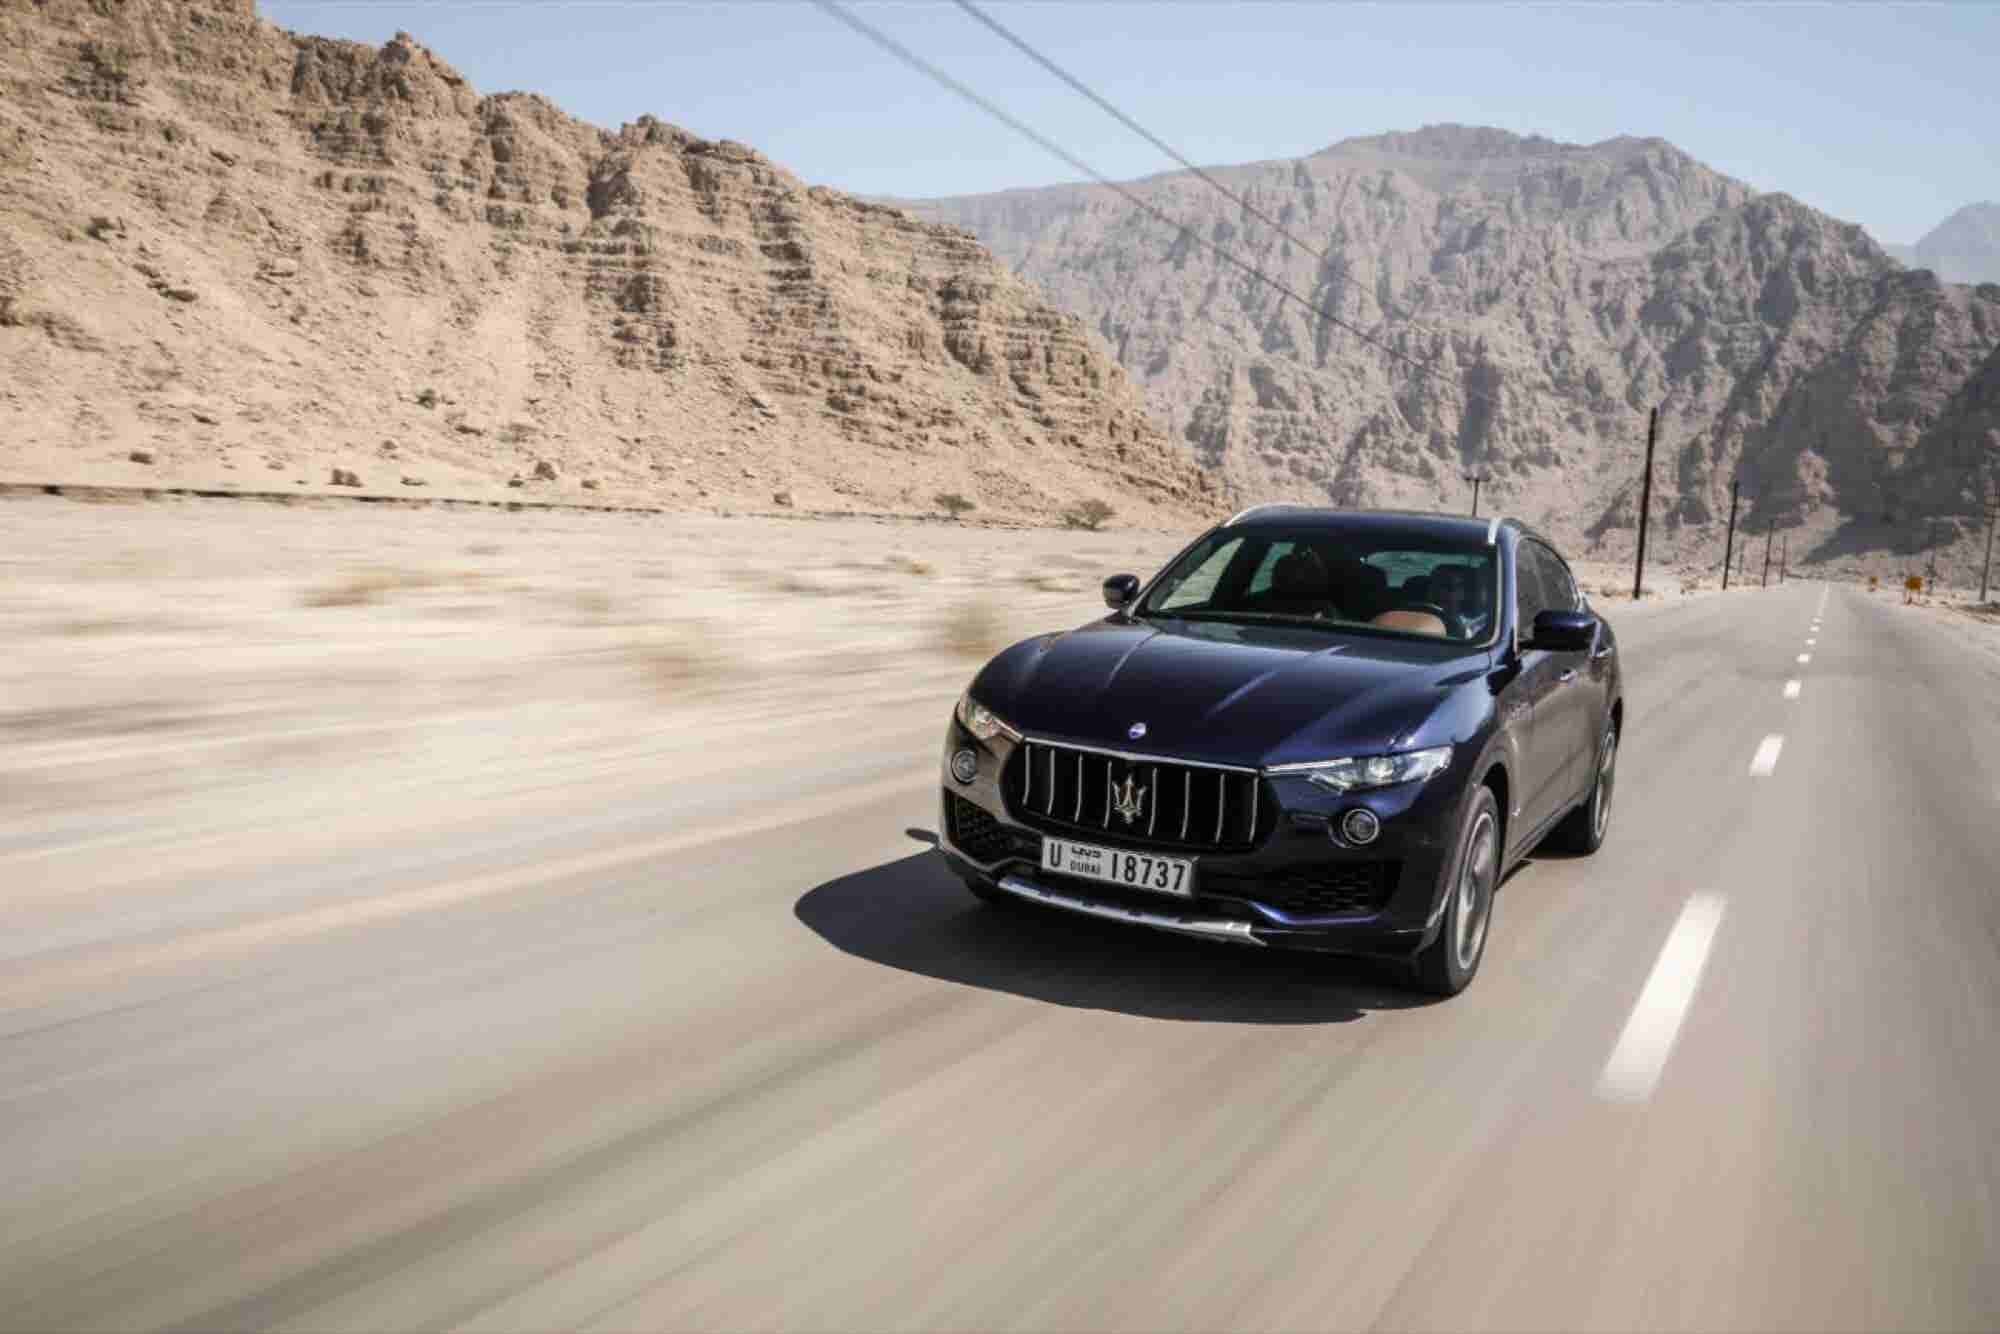 The Outlier: The Maserati Levante S Is A Refreshing Splash Of Color In The Grey World Of Premium SUVs